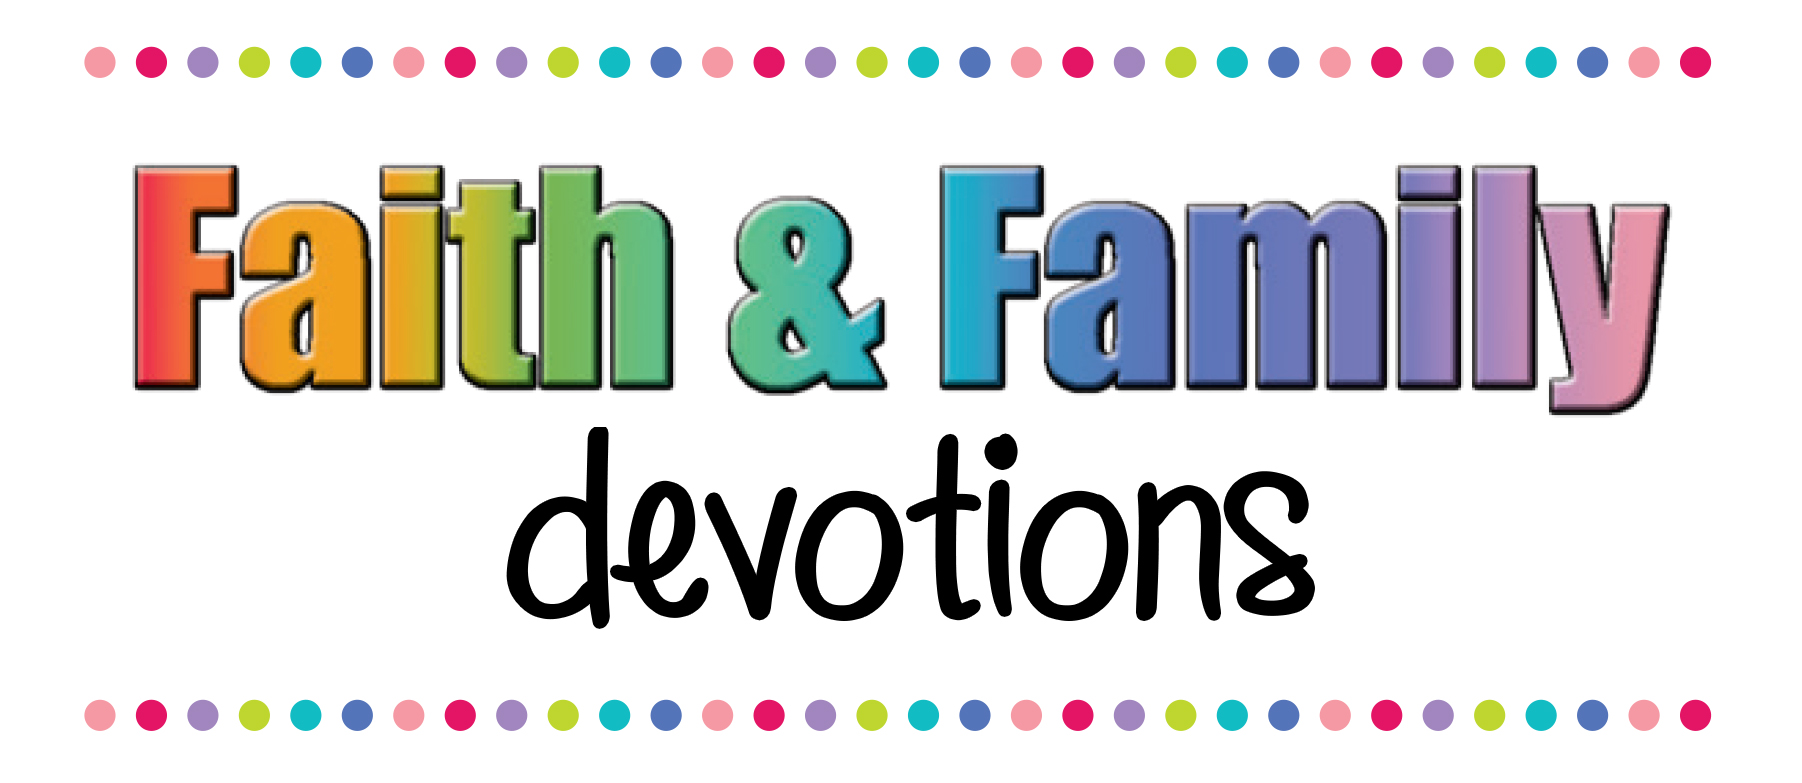 Each week in April use these pages to guide you in some family devotions! Help your kids use a Bible to find the passage, read it and talk about it. Encourage your whole family to build the habit of reading God's Word each day.